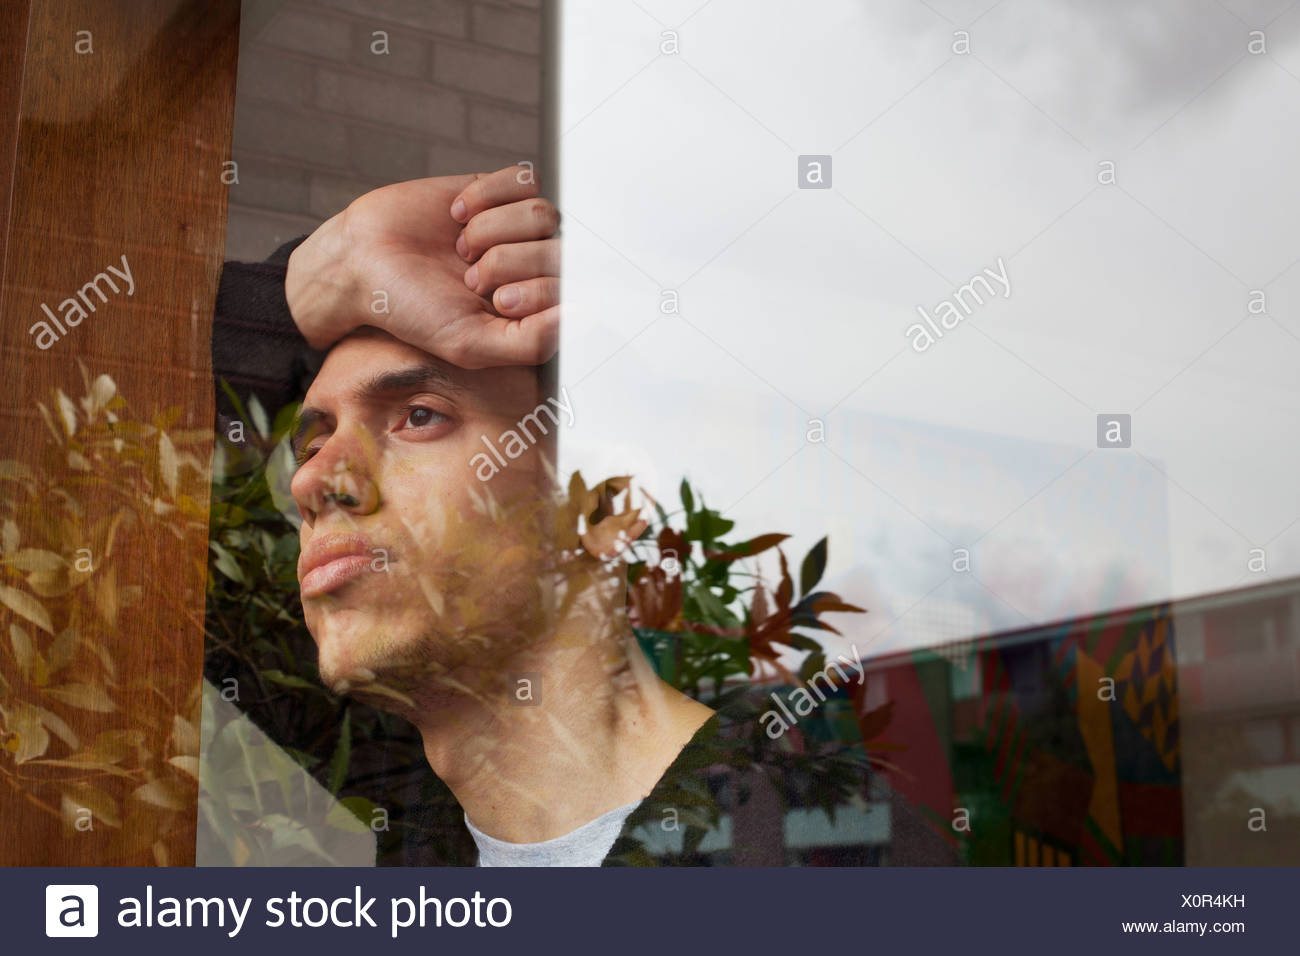 Young man with hand on head, looking through window - Stock Image